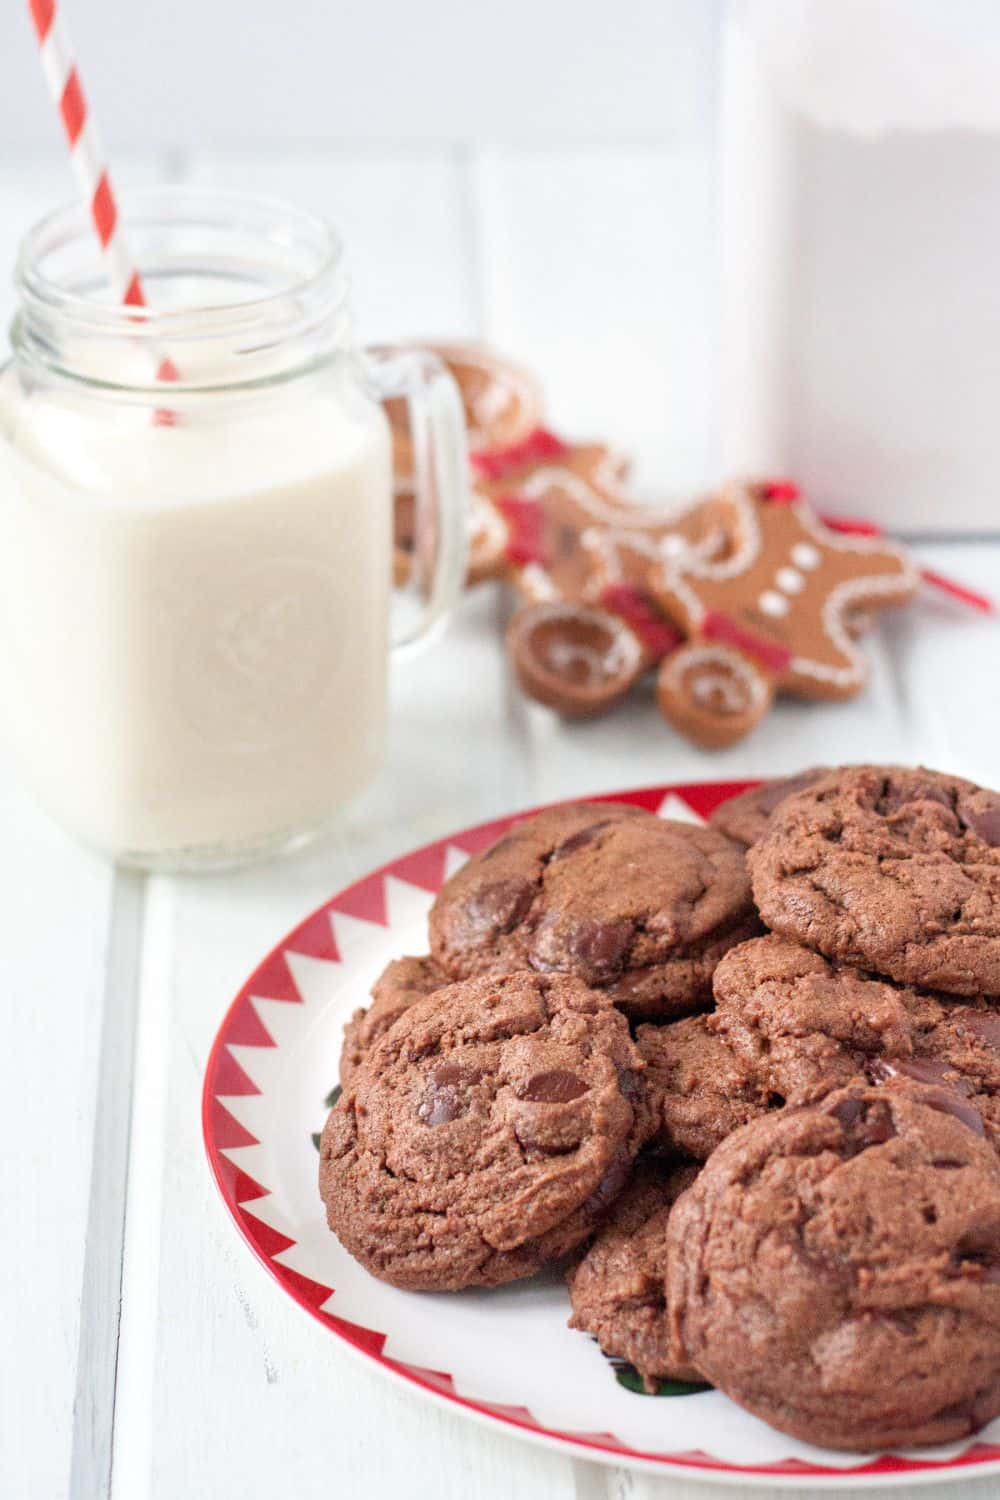 Chocolate Chinese Five Spice Cookies - a really unique Christmas cookie recipe for the foodie!